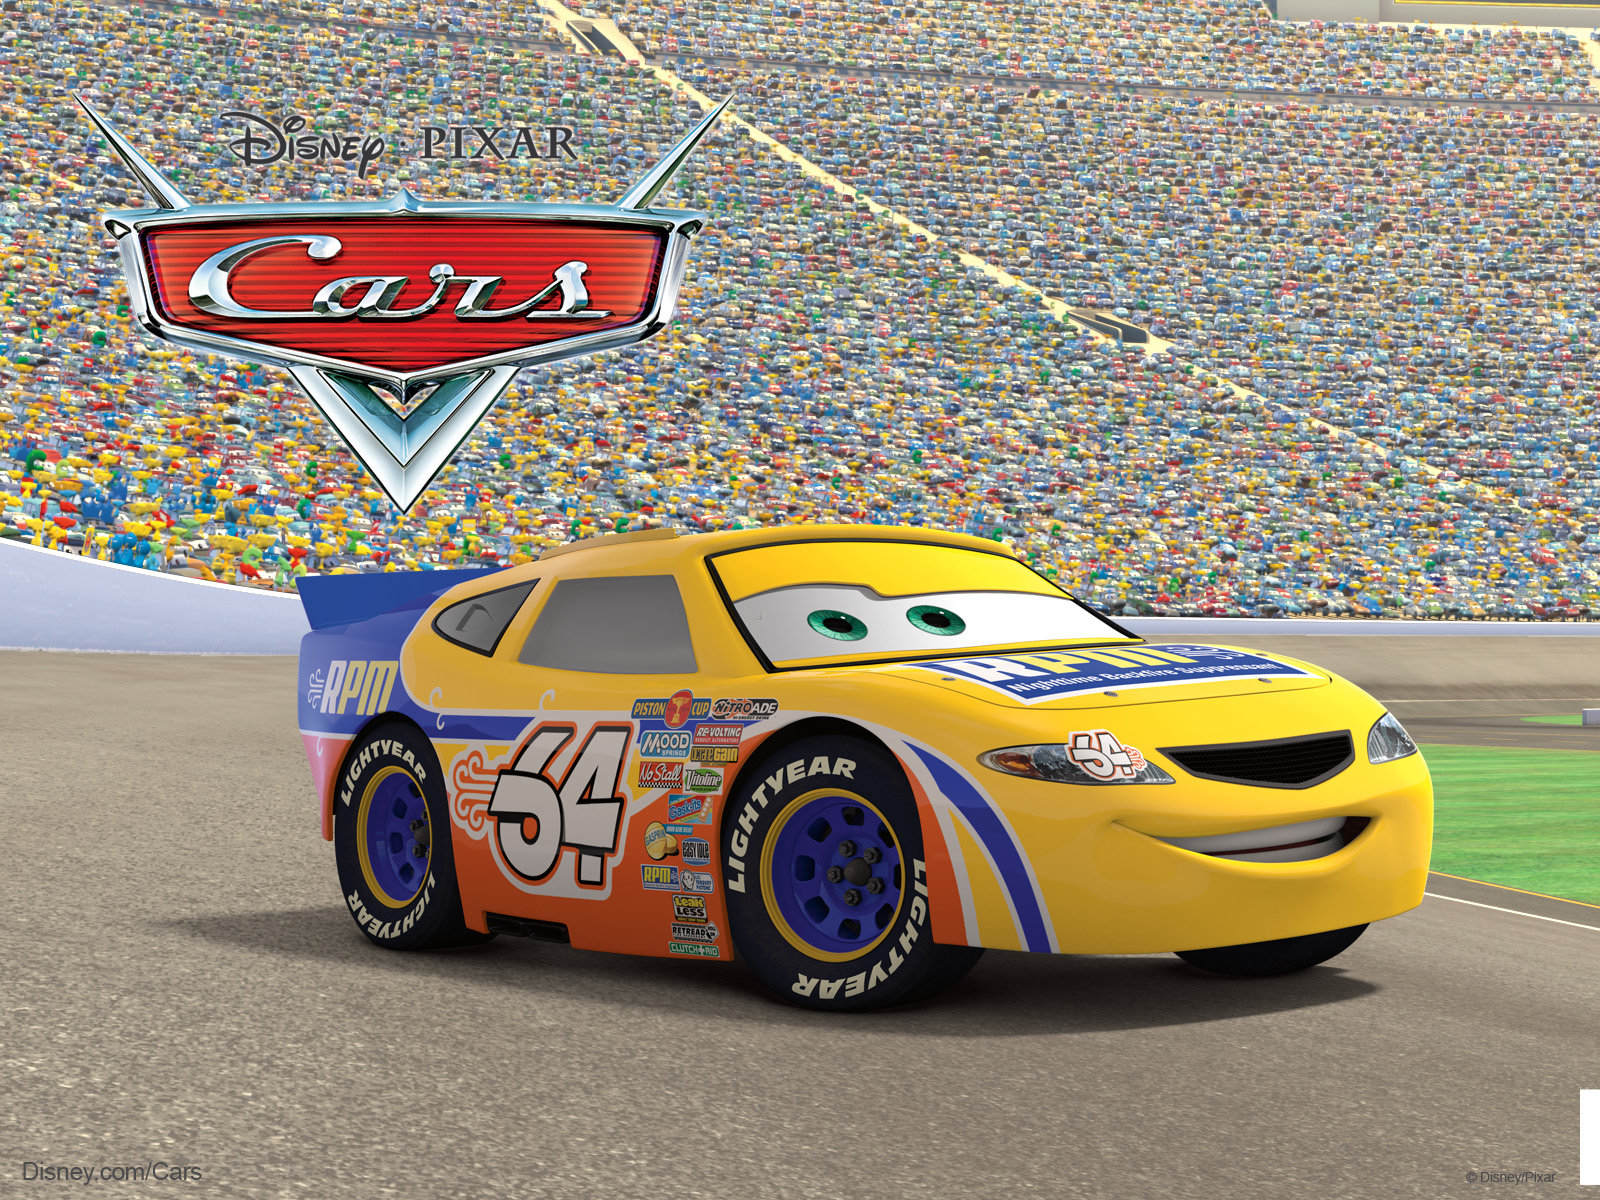 Free Download Winford Rutherford Race Car From Pixar Cars Movie